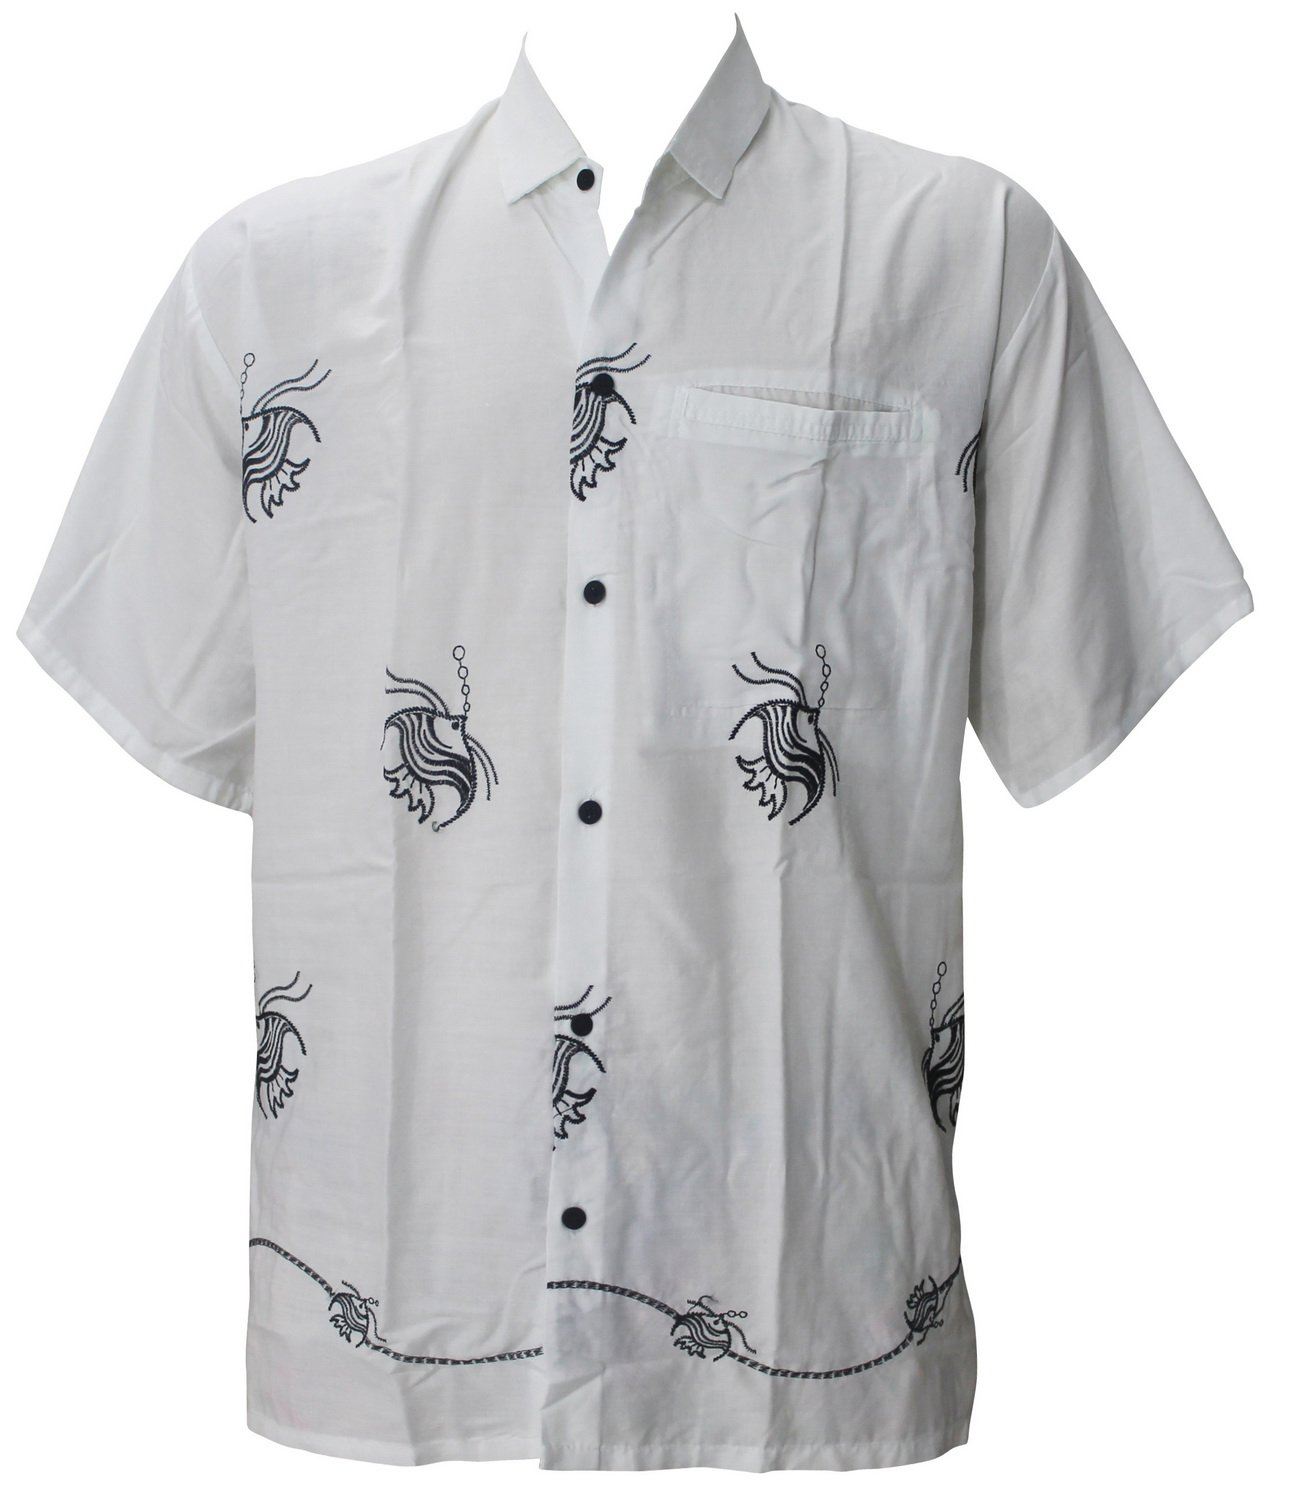 5484c079 La Leela Aloha Hawaiian Tropical BEACH Solid plain Mens Casual Short  Sleeves Button Down Tropical Shirts XL White